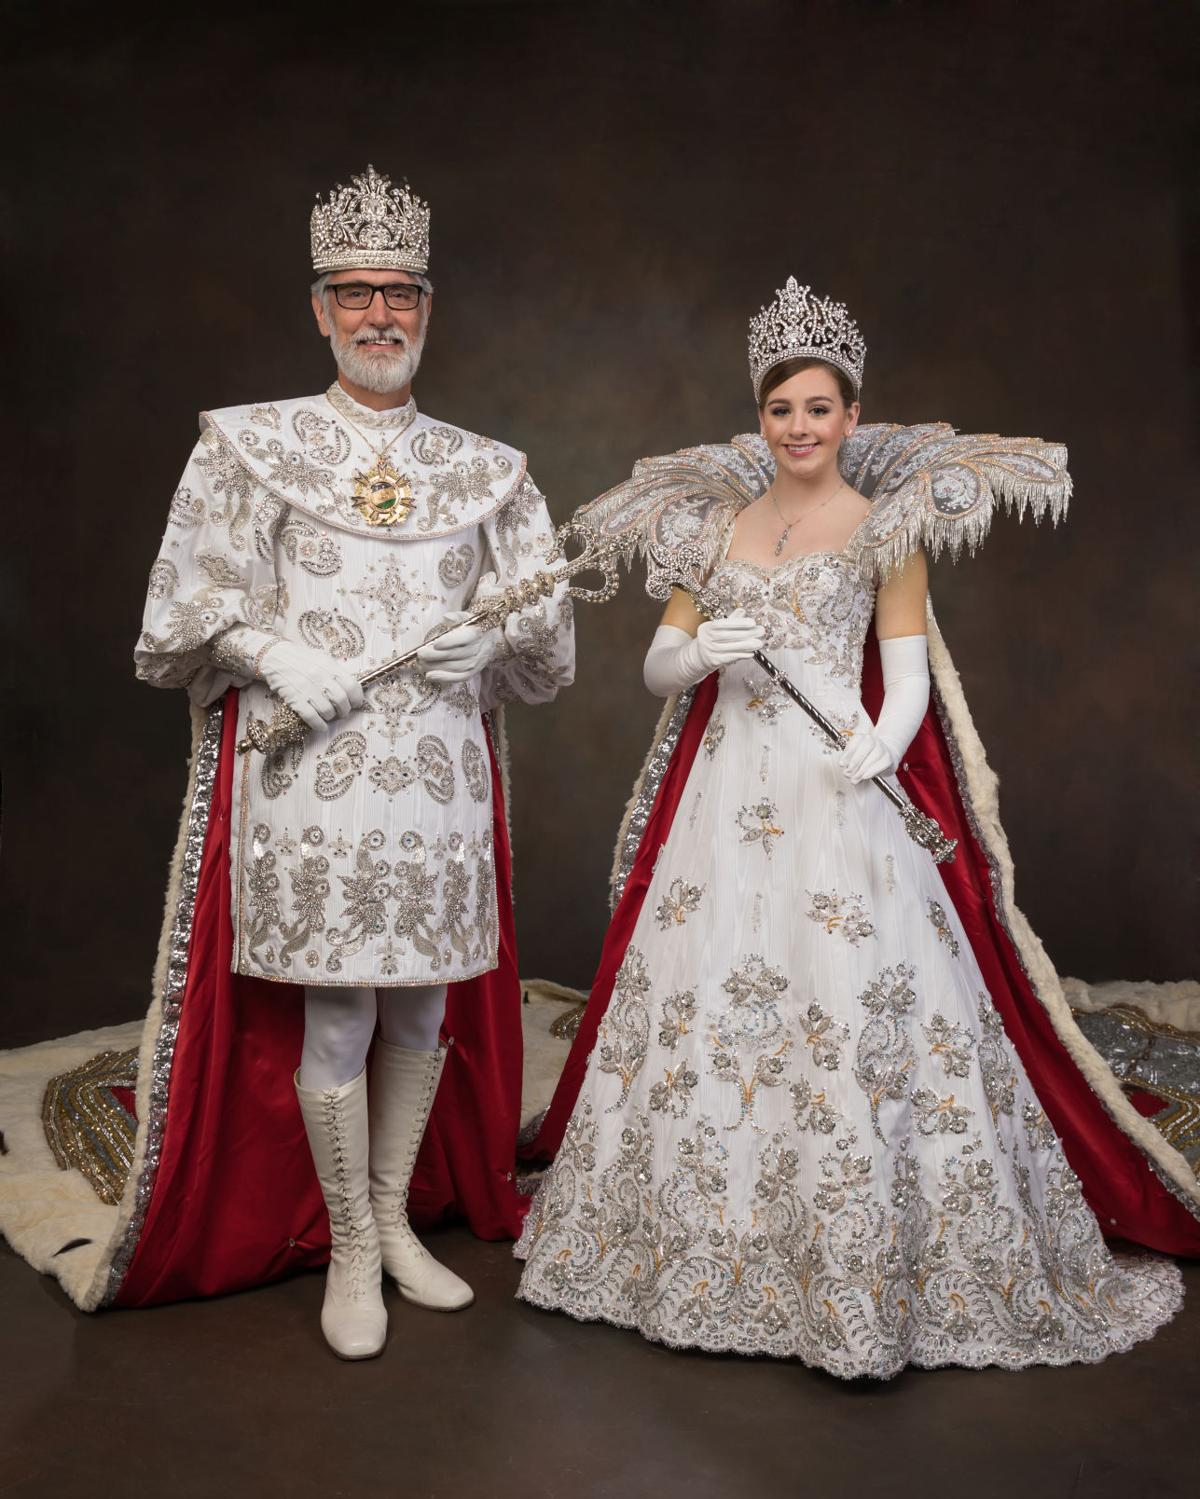 0726-M Judice_KING-L Guillot_QUEEN costumes.jpg